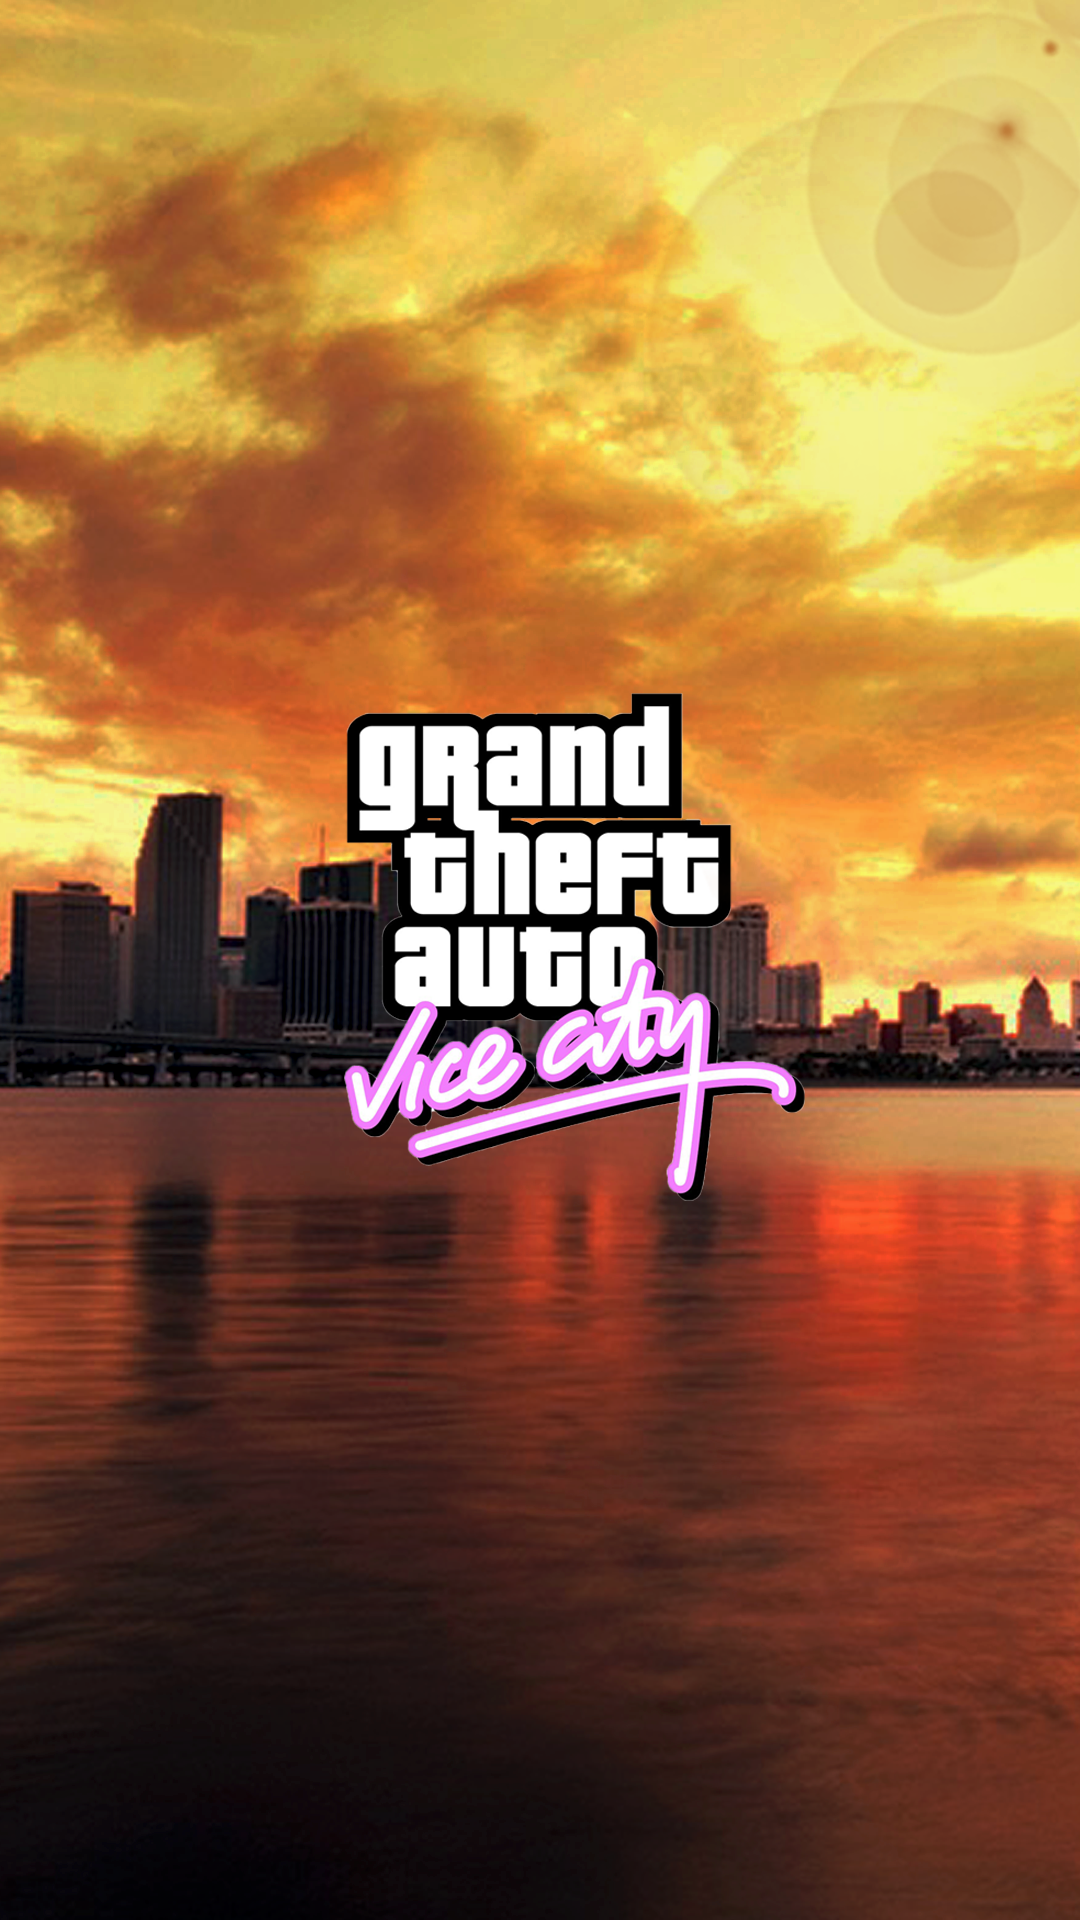 Gta Mobile Wallpapers Top Free Gta Mobile Backgrounds